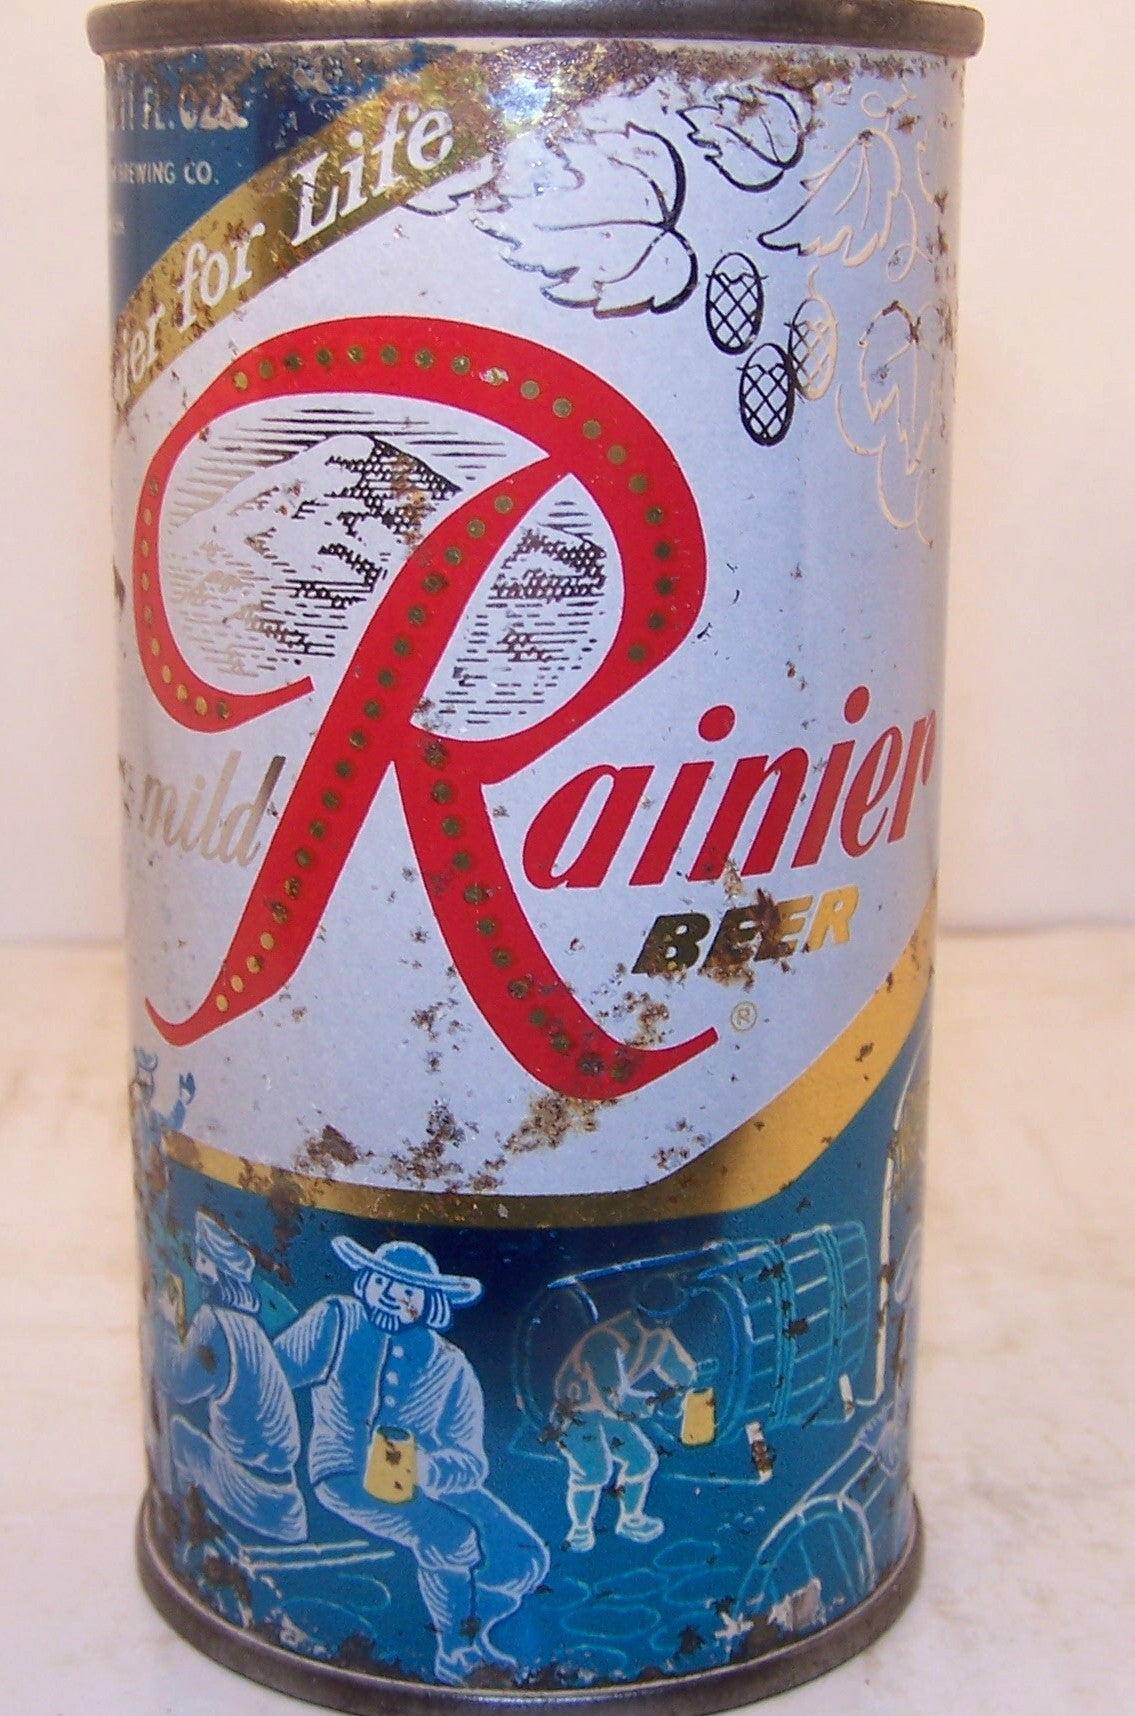 Rainier Jube 11oz Sick's Rainier Brewing, Spokane. Grade 2+ Sold on 3/14/15